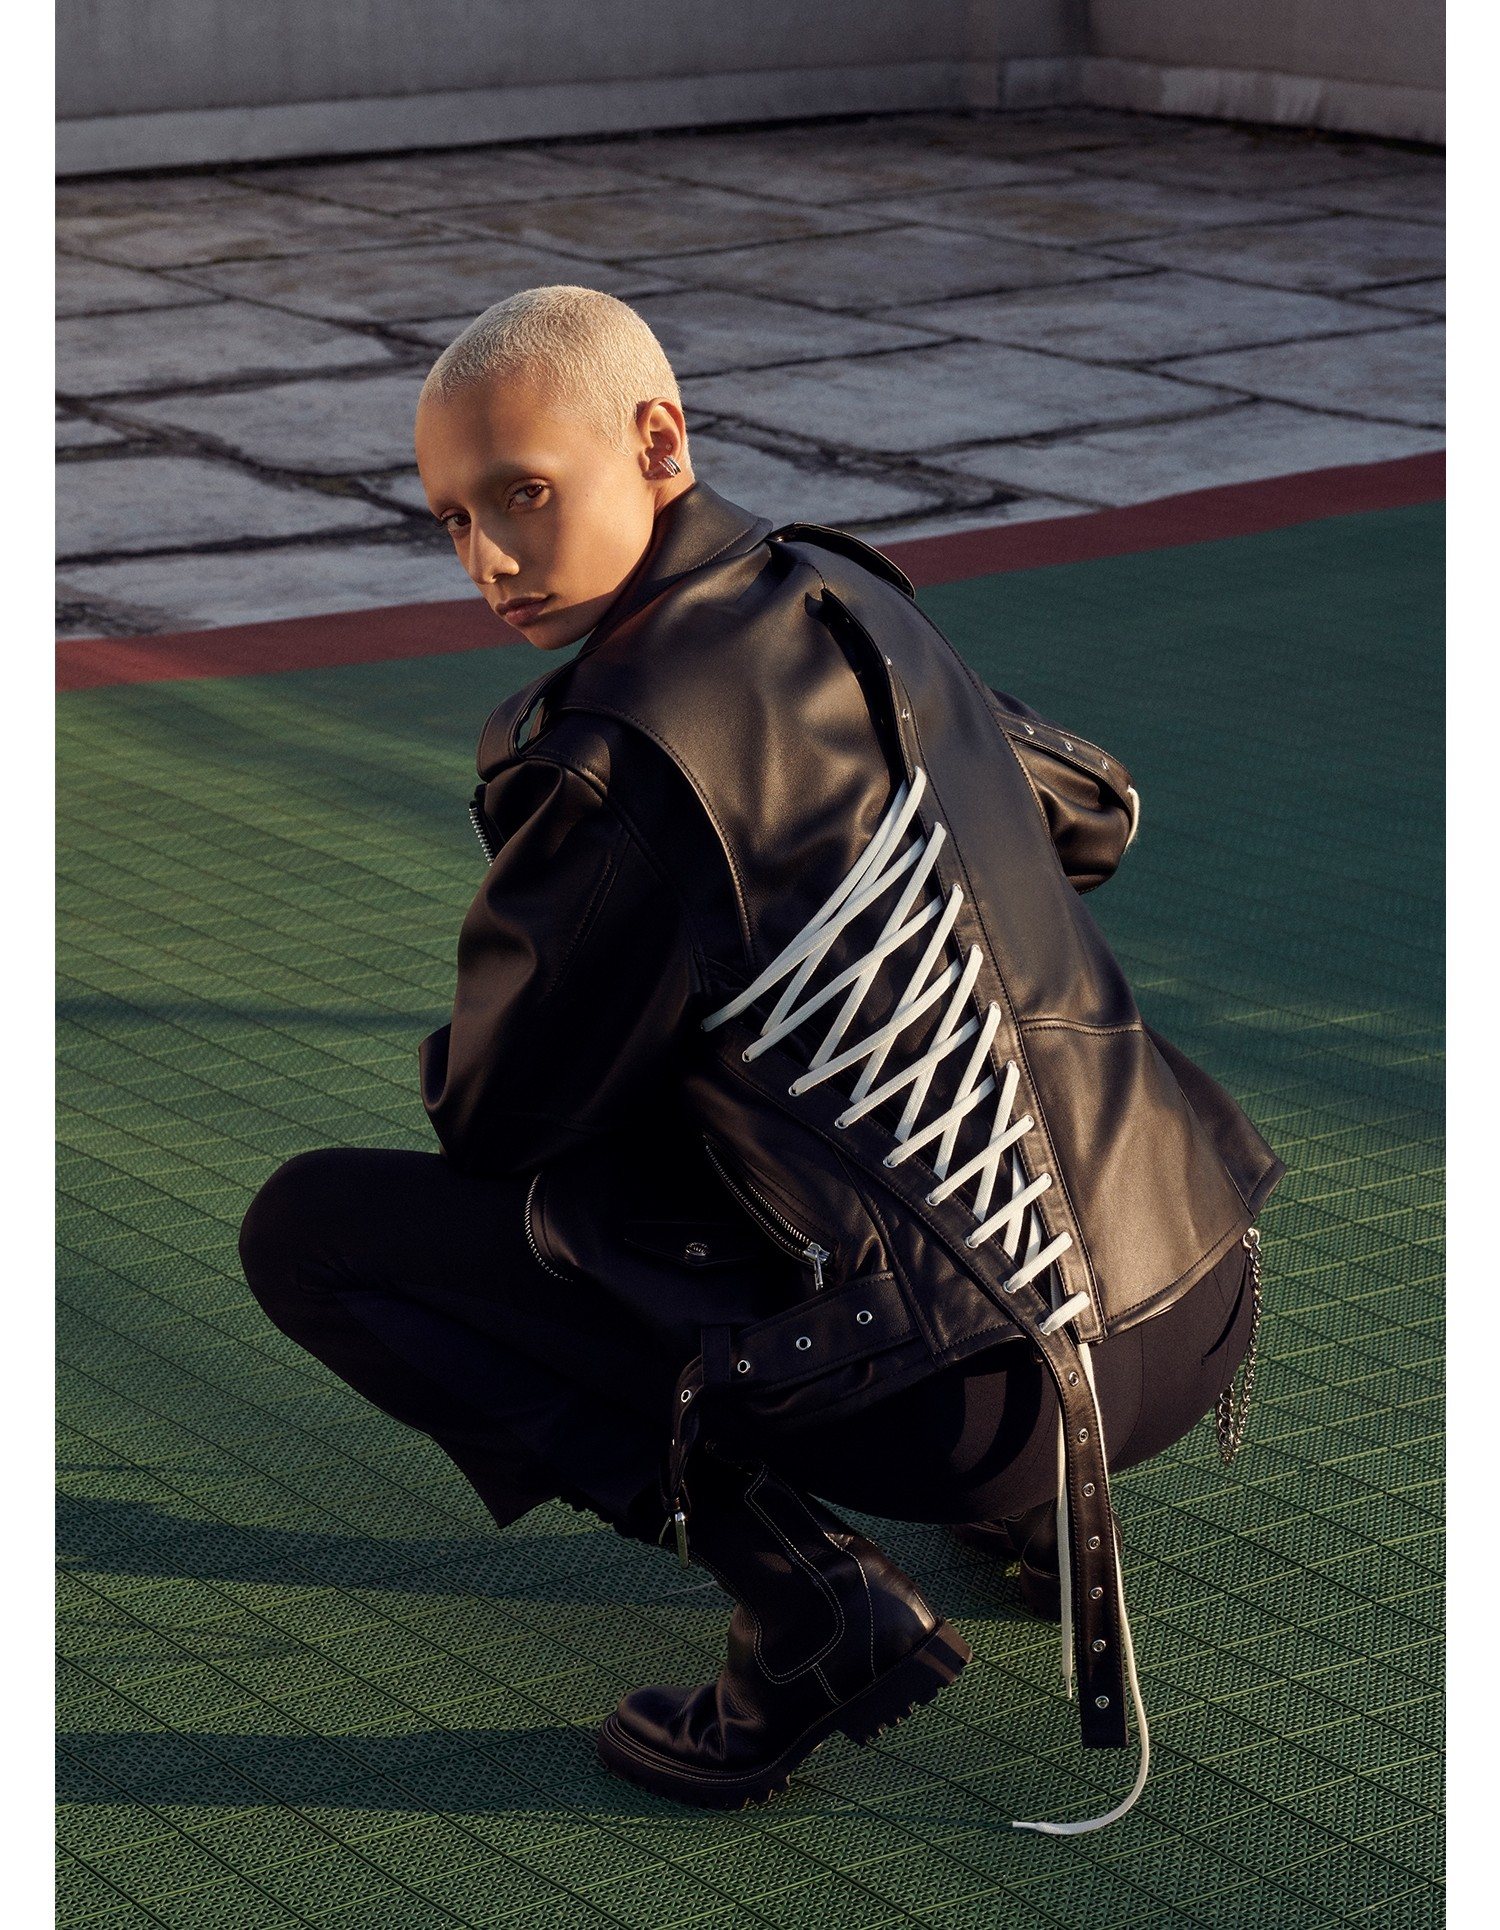 MONSE Lace Up Leather Motorcycle Jacket in Black on Model Crouching Down Back View